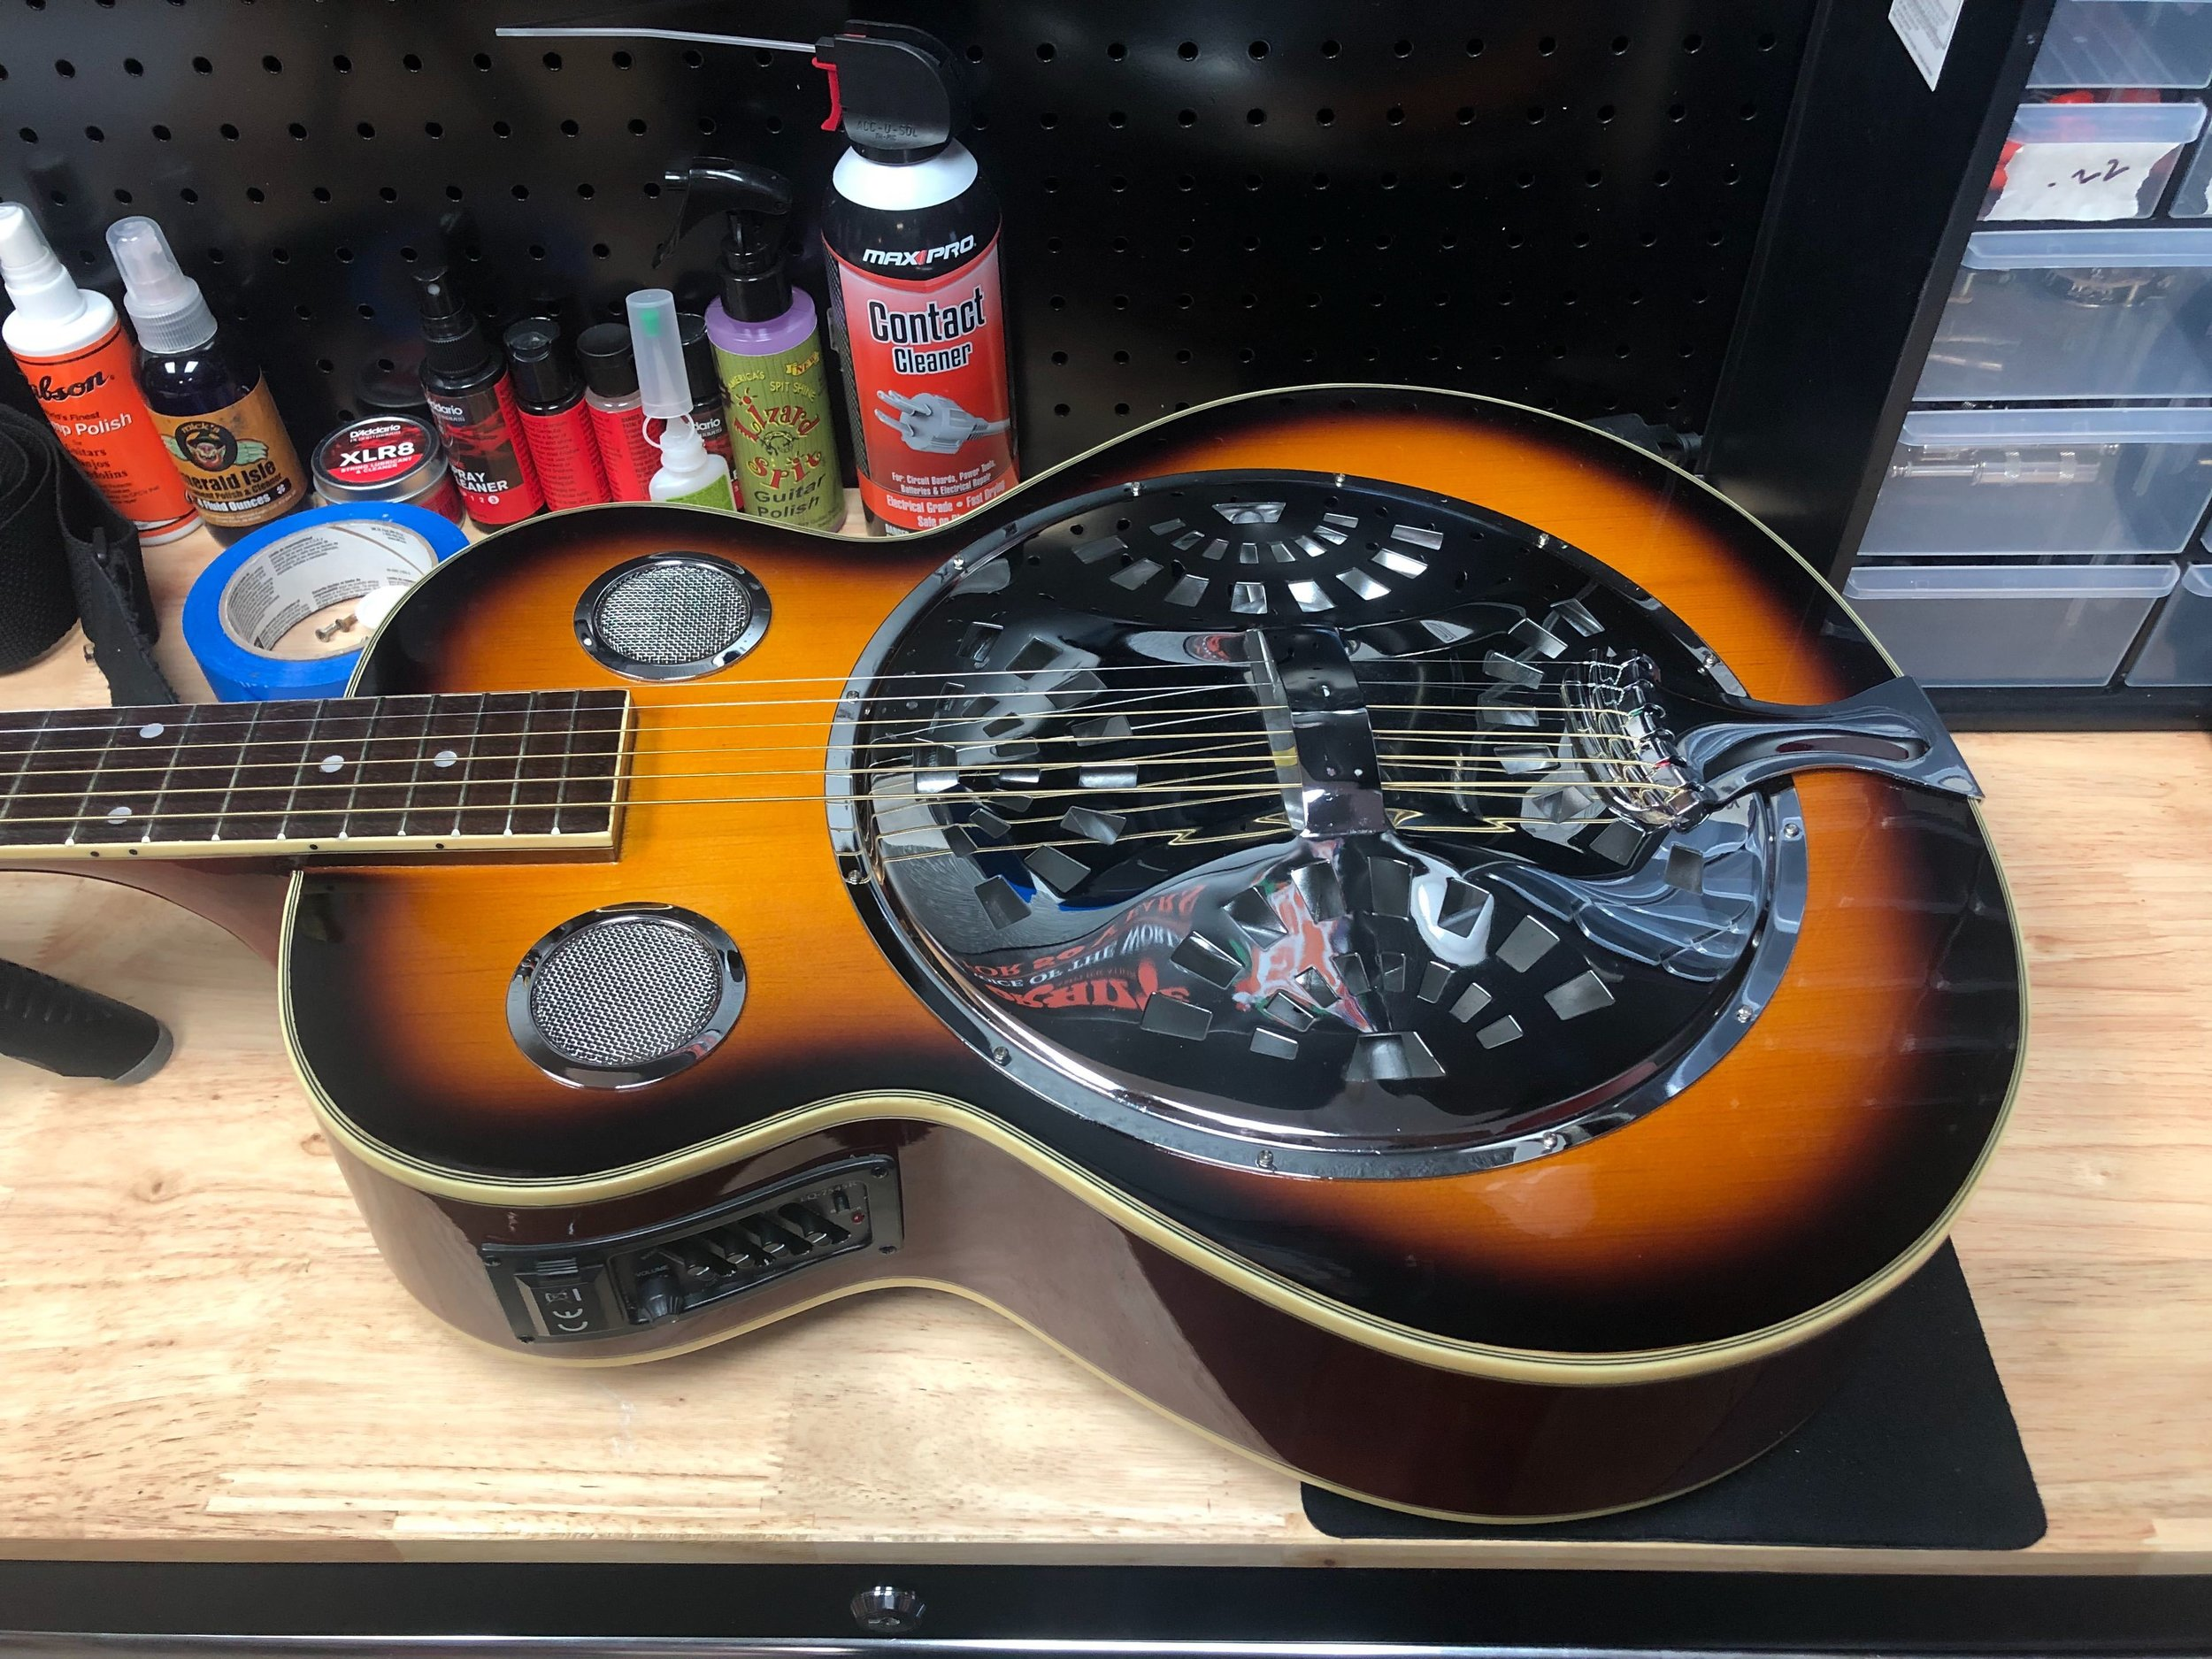 Repairs & Service - RiverCity offers expert instrument maintenance and repair services from restringing to repairing broken headstocks, and much more. Free estimates!